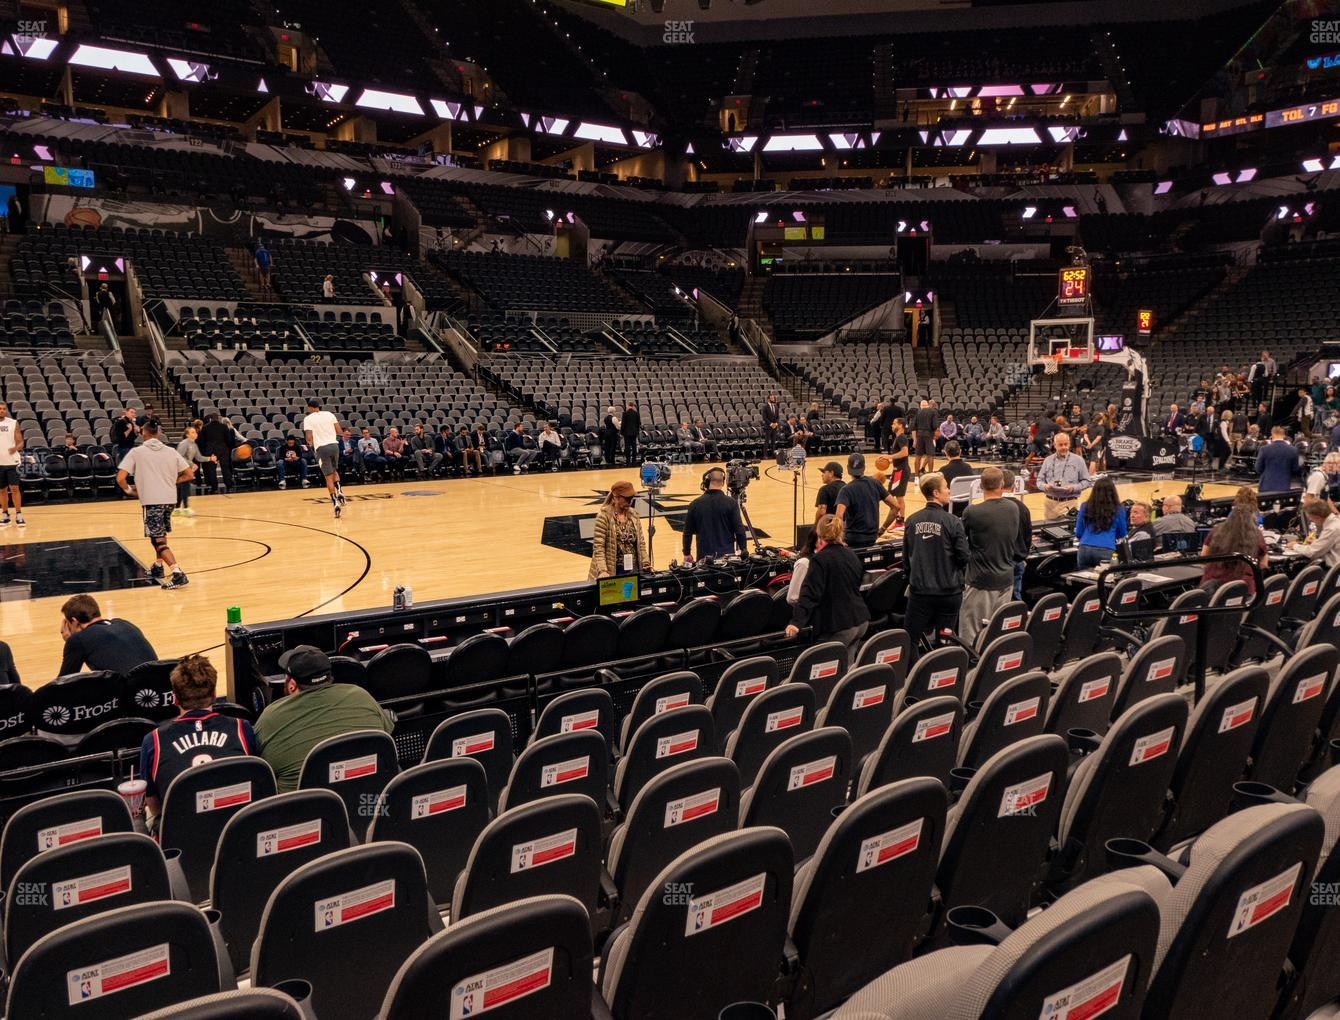 San Antonio Spurs at AT&T Center Charter 10 View